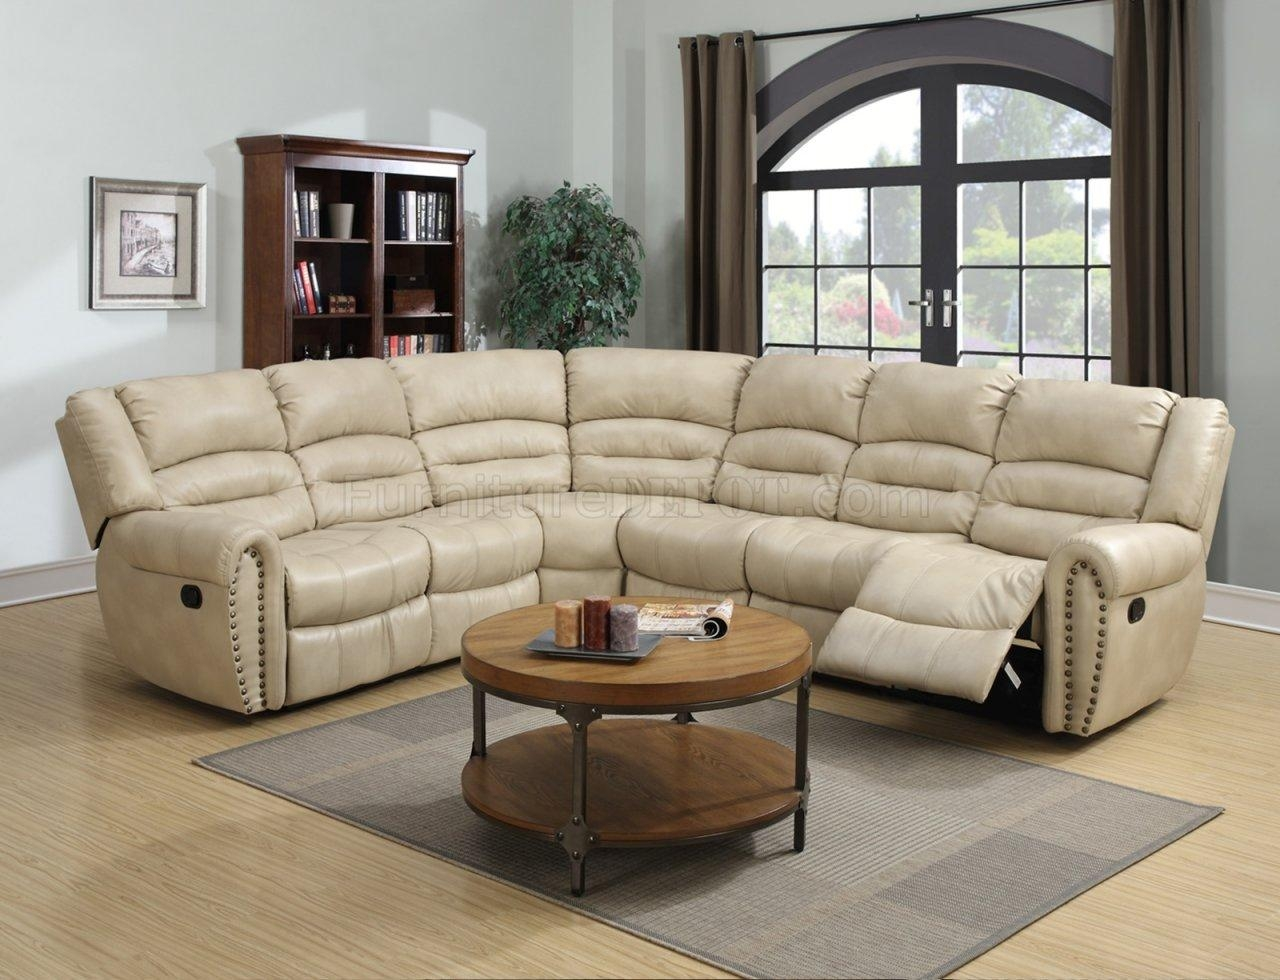 G687 Motion Sectional Sofa In Beige Bonded Leatherglory Within Leather Motion Sectional Sofa (View 4 of 20)